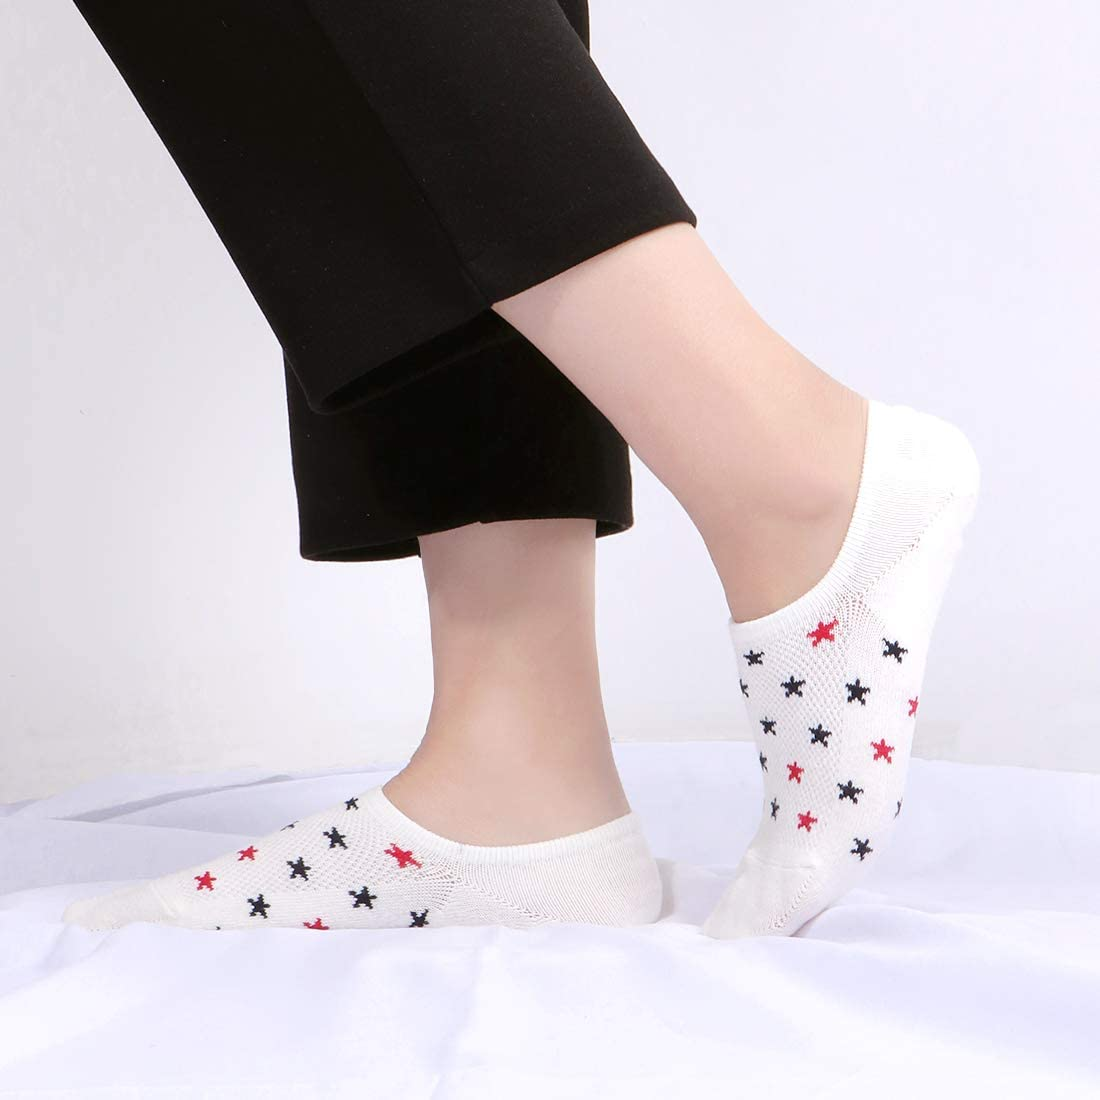 6 Pairs No Show Socks for Women Cotton Low Cut Liner Casual Non Slip Breathable Ladies Socks for Sneaker Loafers Trainer